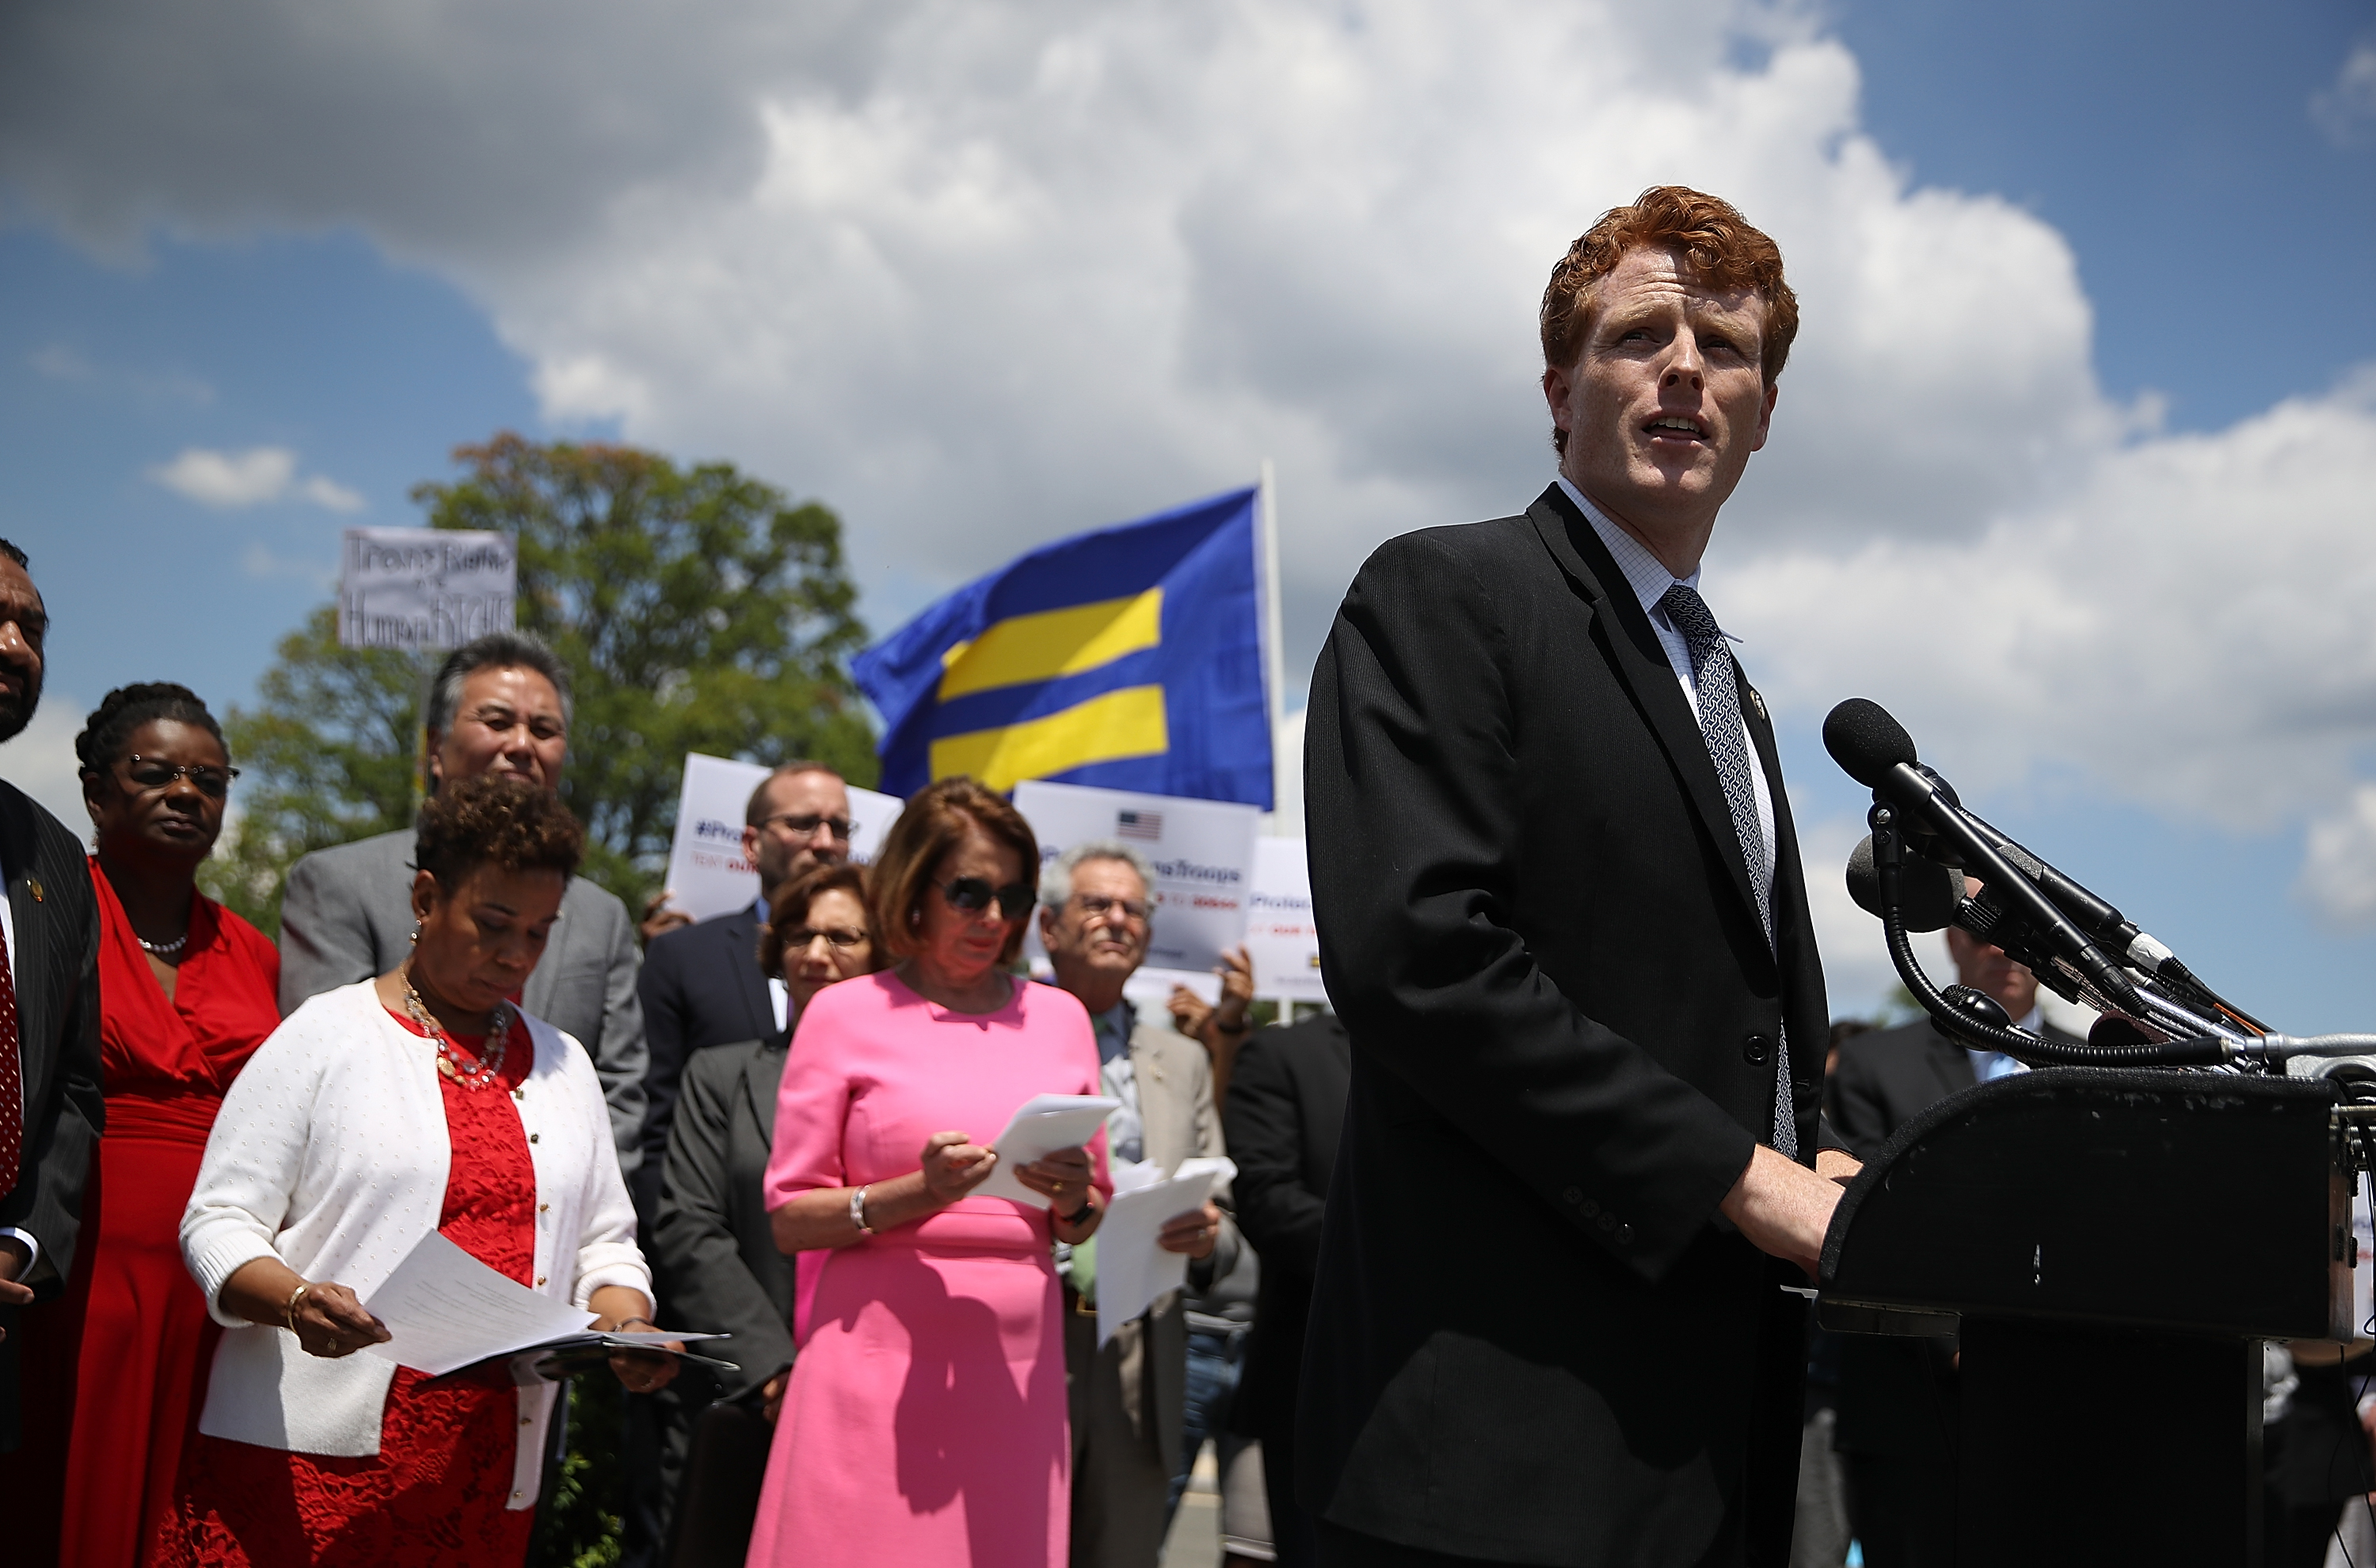 Joe Kennedy's potential primary challenge to Ed Markey, explained